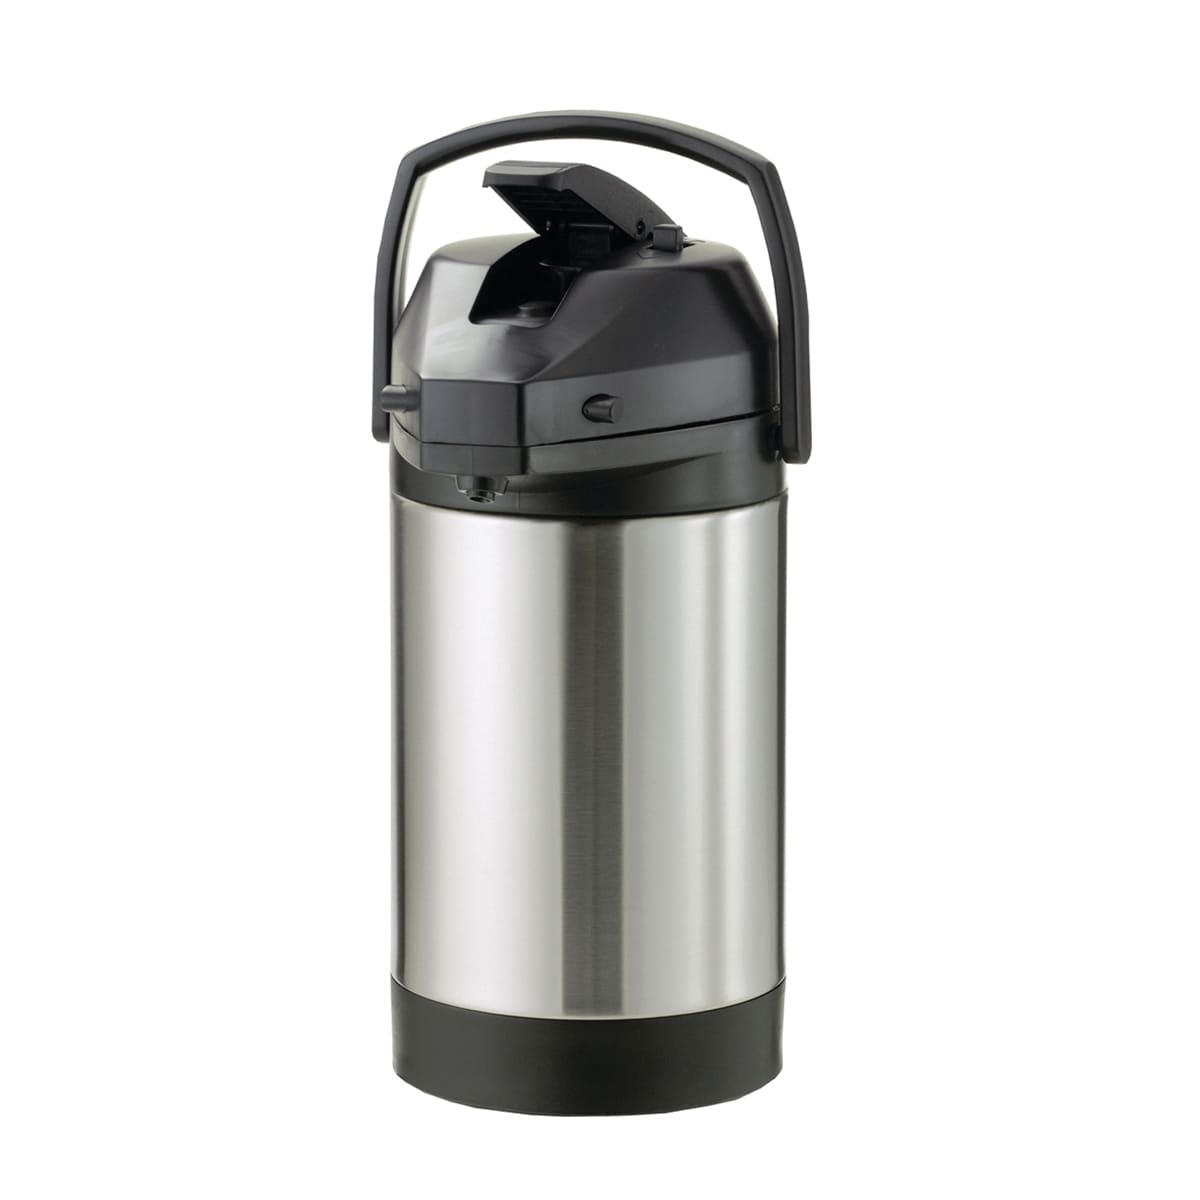 Service Ideas SVAP38CPL 3.8-liter Airpot w/ Interchangeable Lever Lid, Brushed Stainless